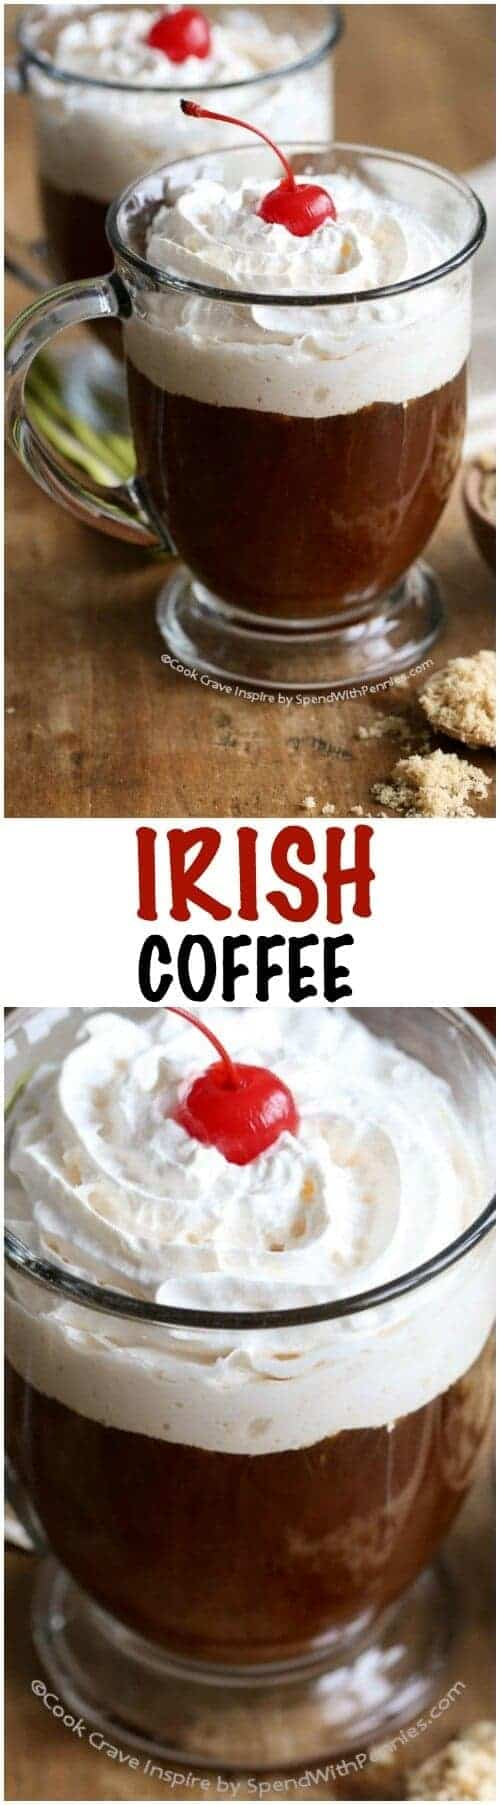 This Irish Coffee recipe is perfect for St. Patrick's Day or anytime! Traditionally this is made with Irish Whisky but you could also substitute Bailey's for a rich creamy version.